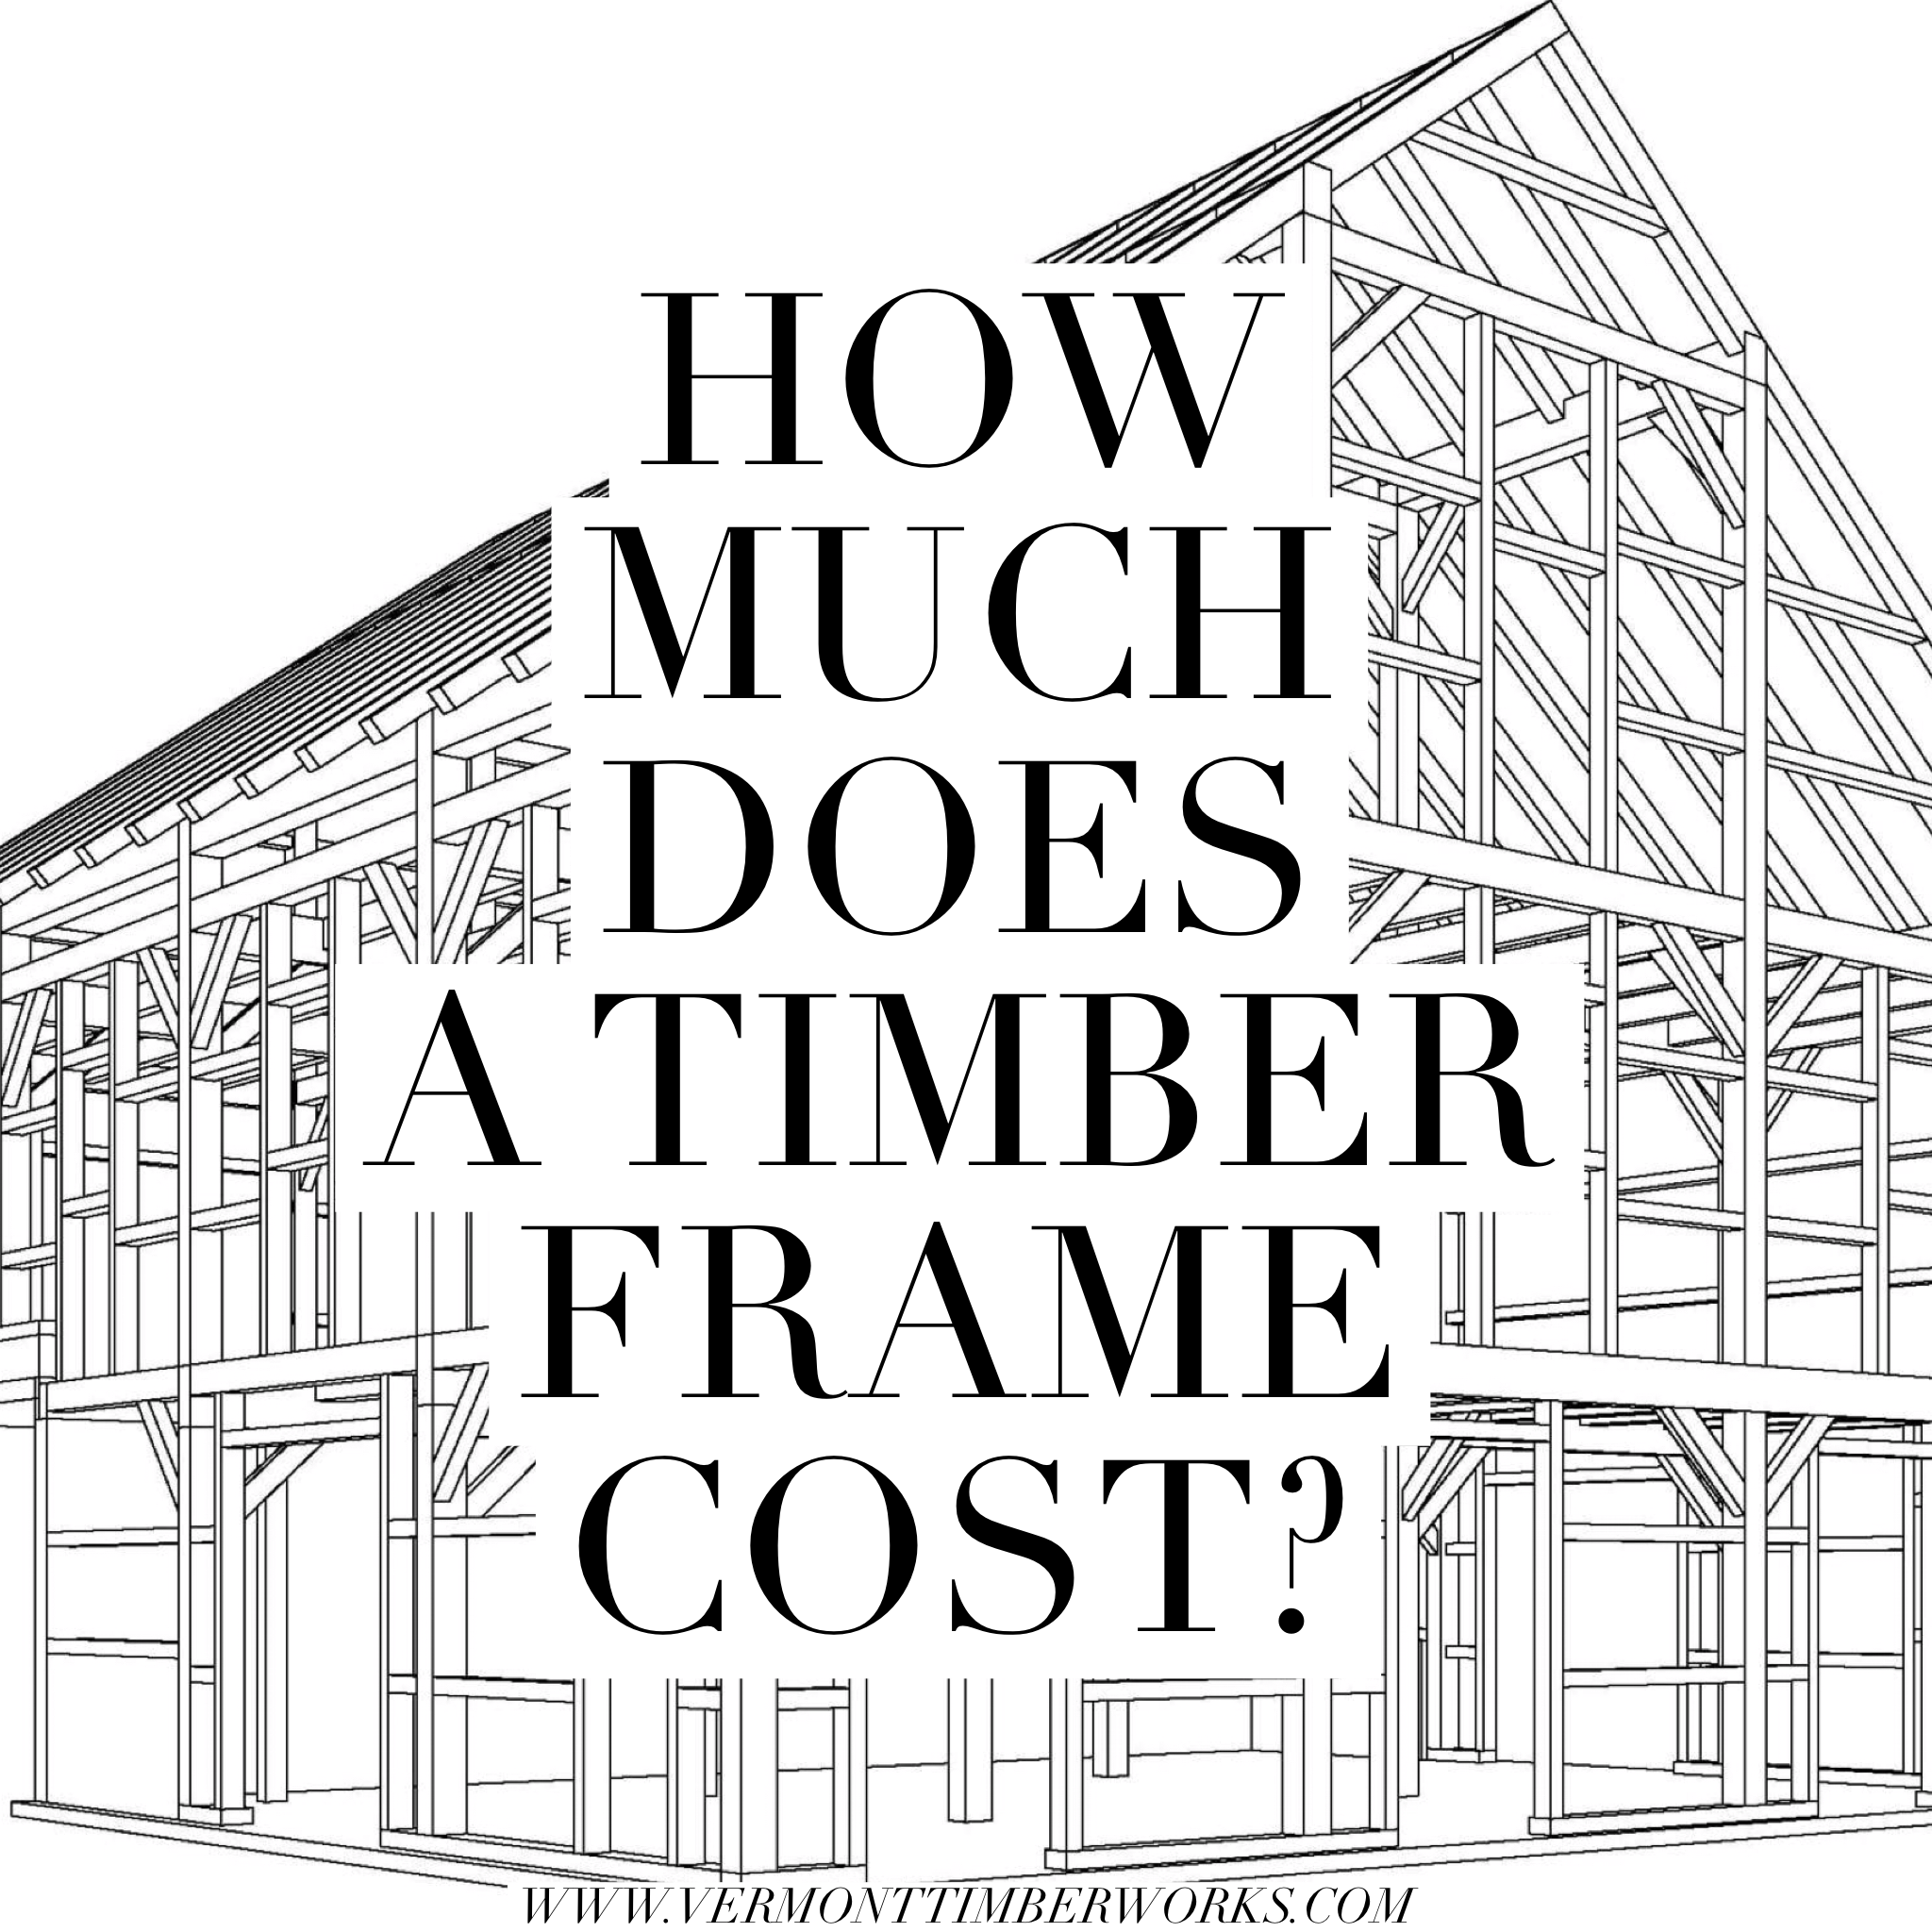 How Much Does a Timber Frame Cost Blog Post – Vermont Timber Works